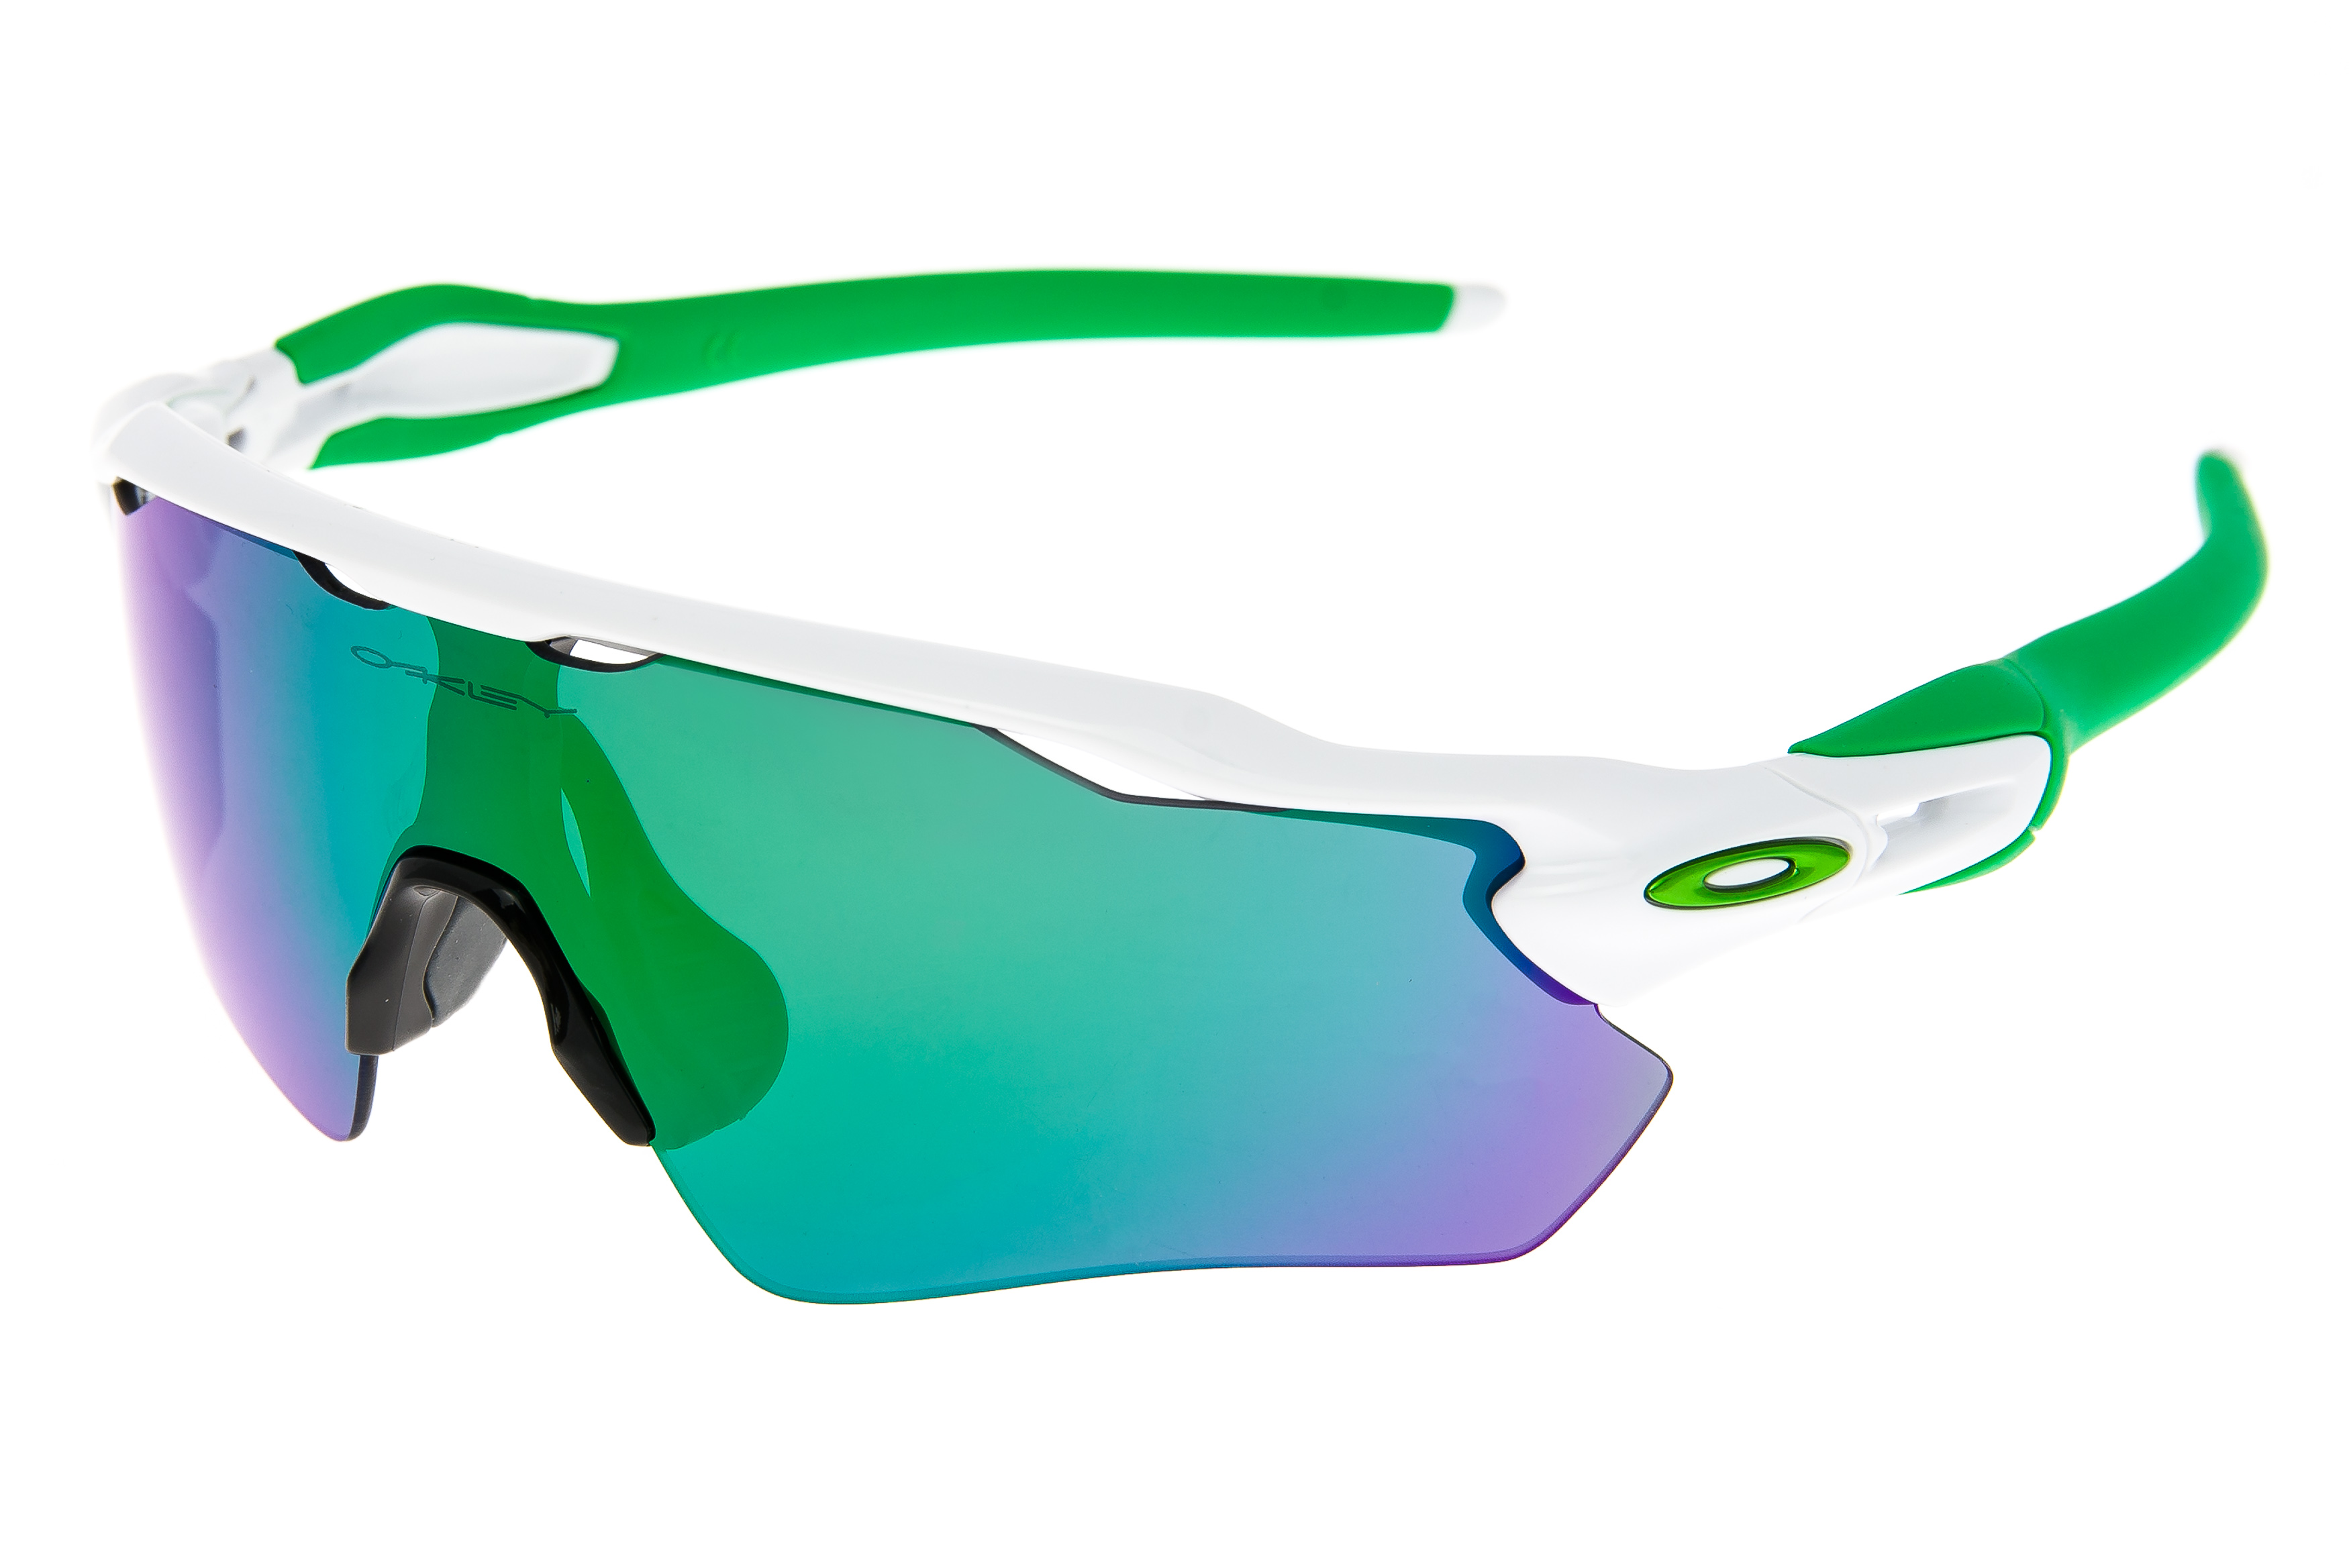 e4fcfcabfd5 Details about Oakley Radar EV Path Sunglasses Polished White Green Frame  Jade Iridium Lens